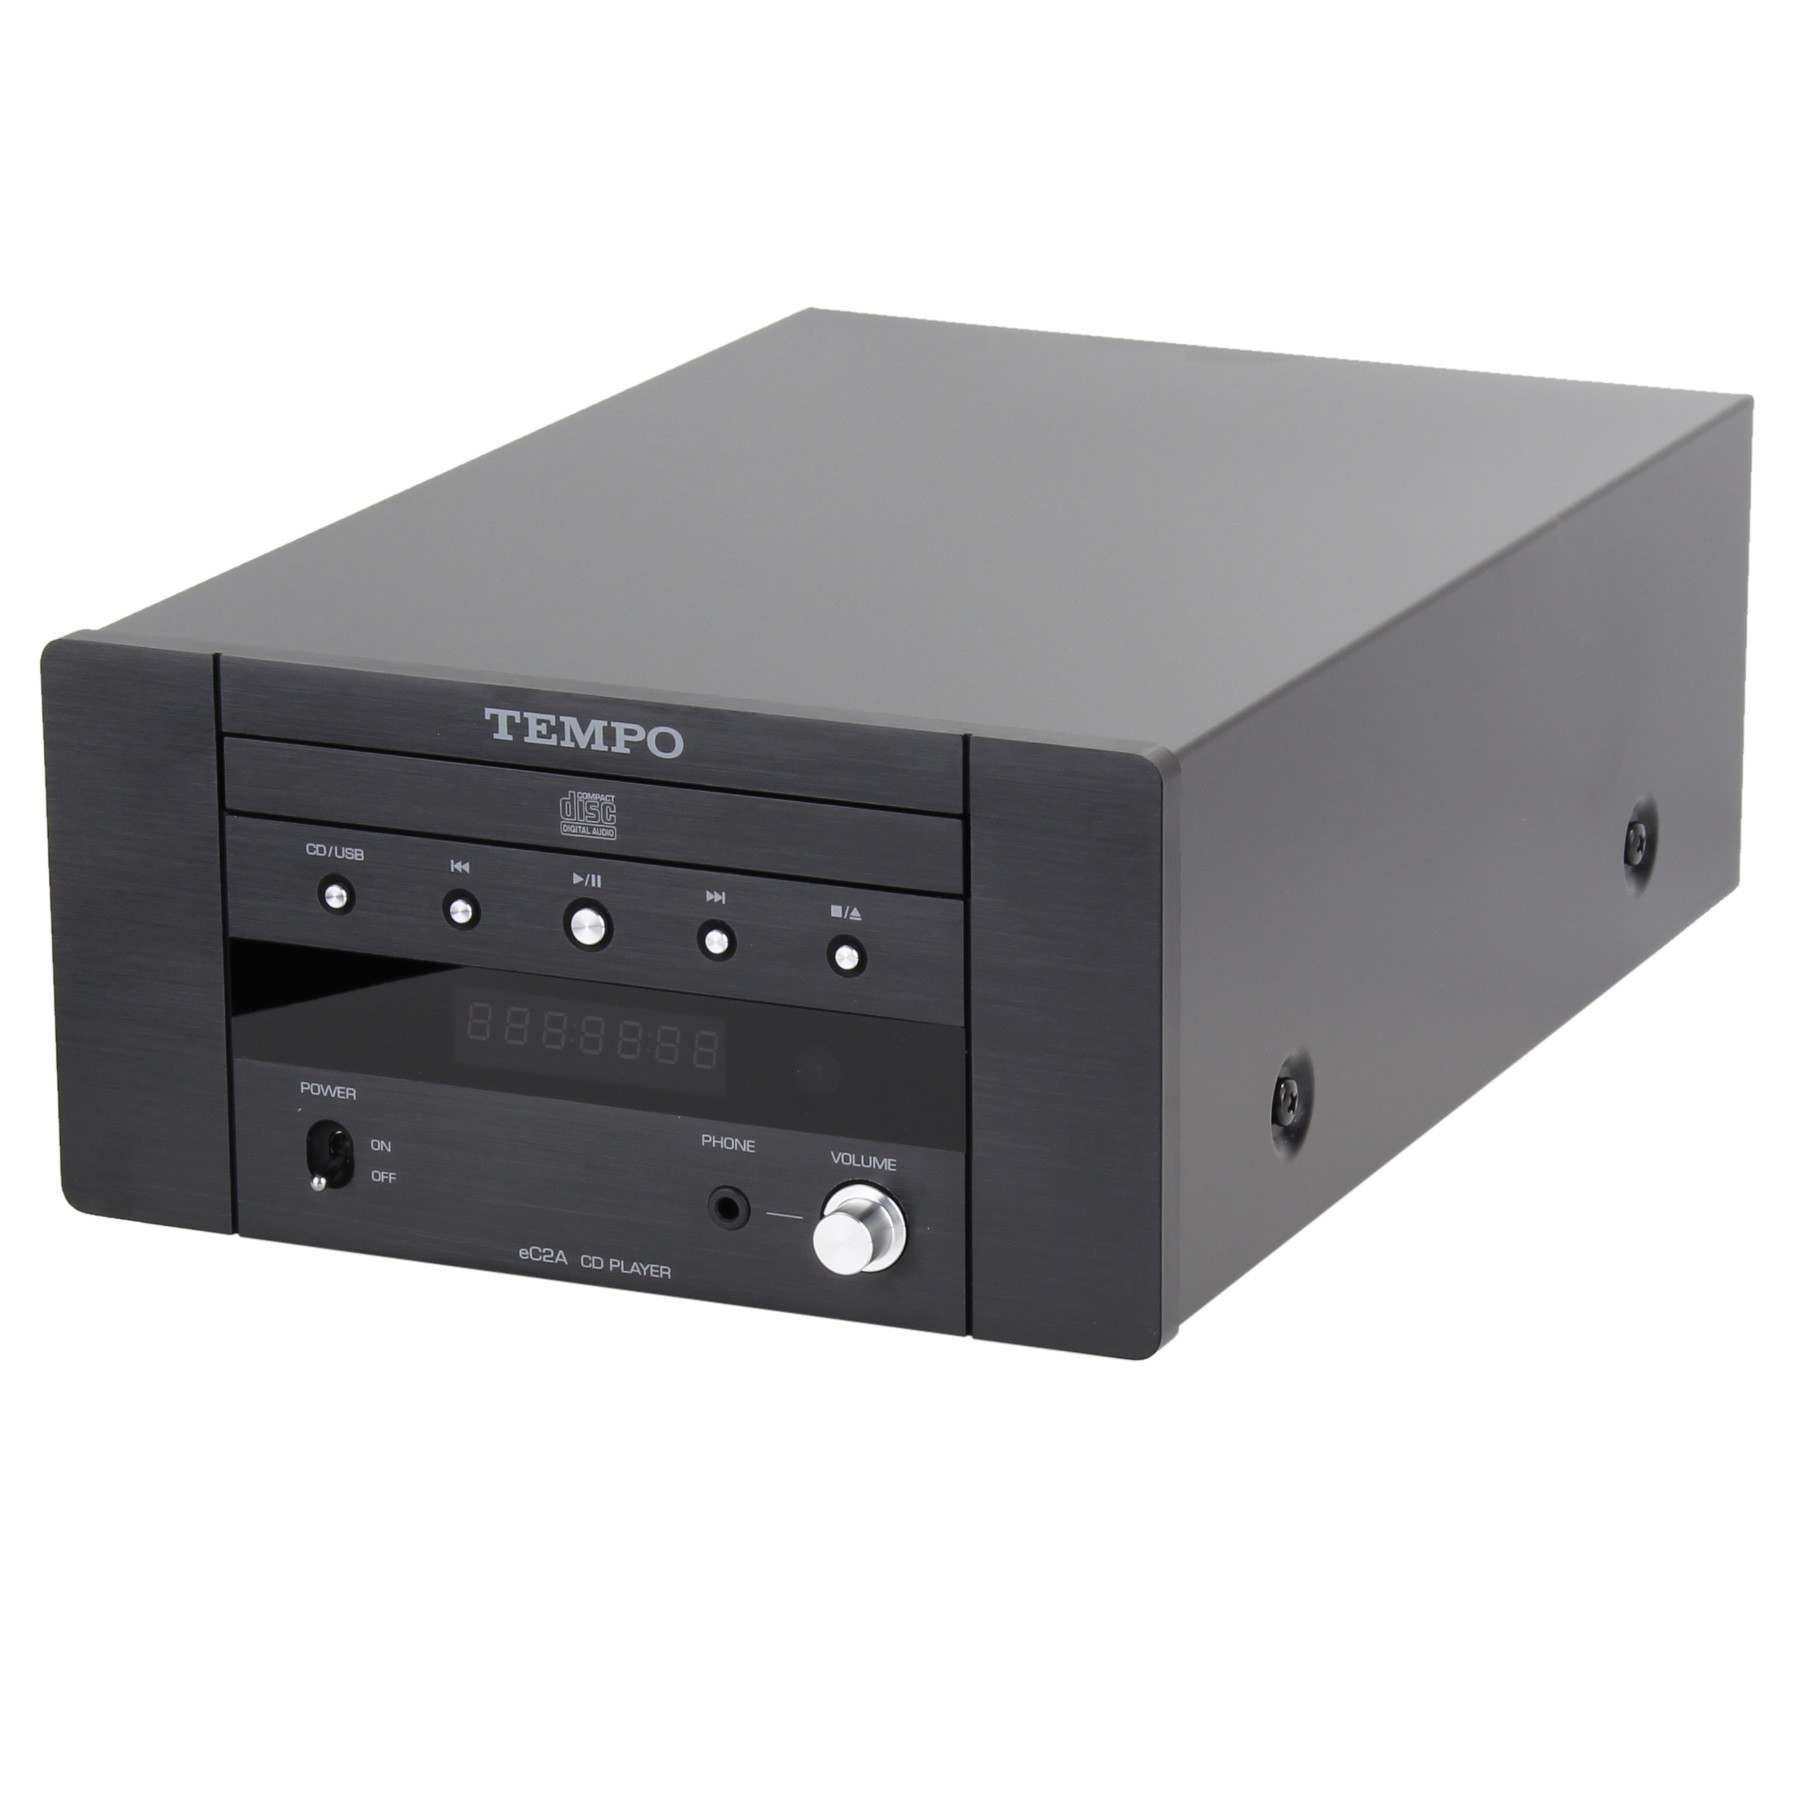 tempo ec2a lecteur cd dac usb es9023 amplificateur casque audiophonics. Black Bedroom Furniture Sets. Home Design Ideas